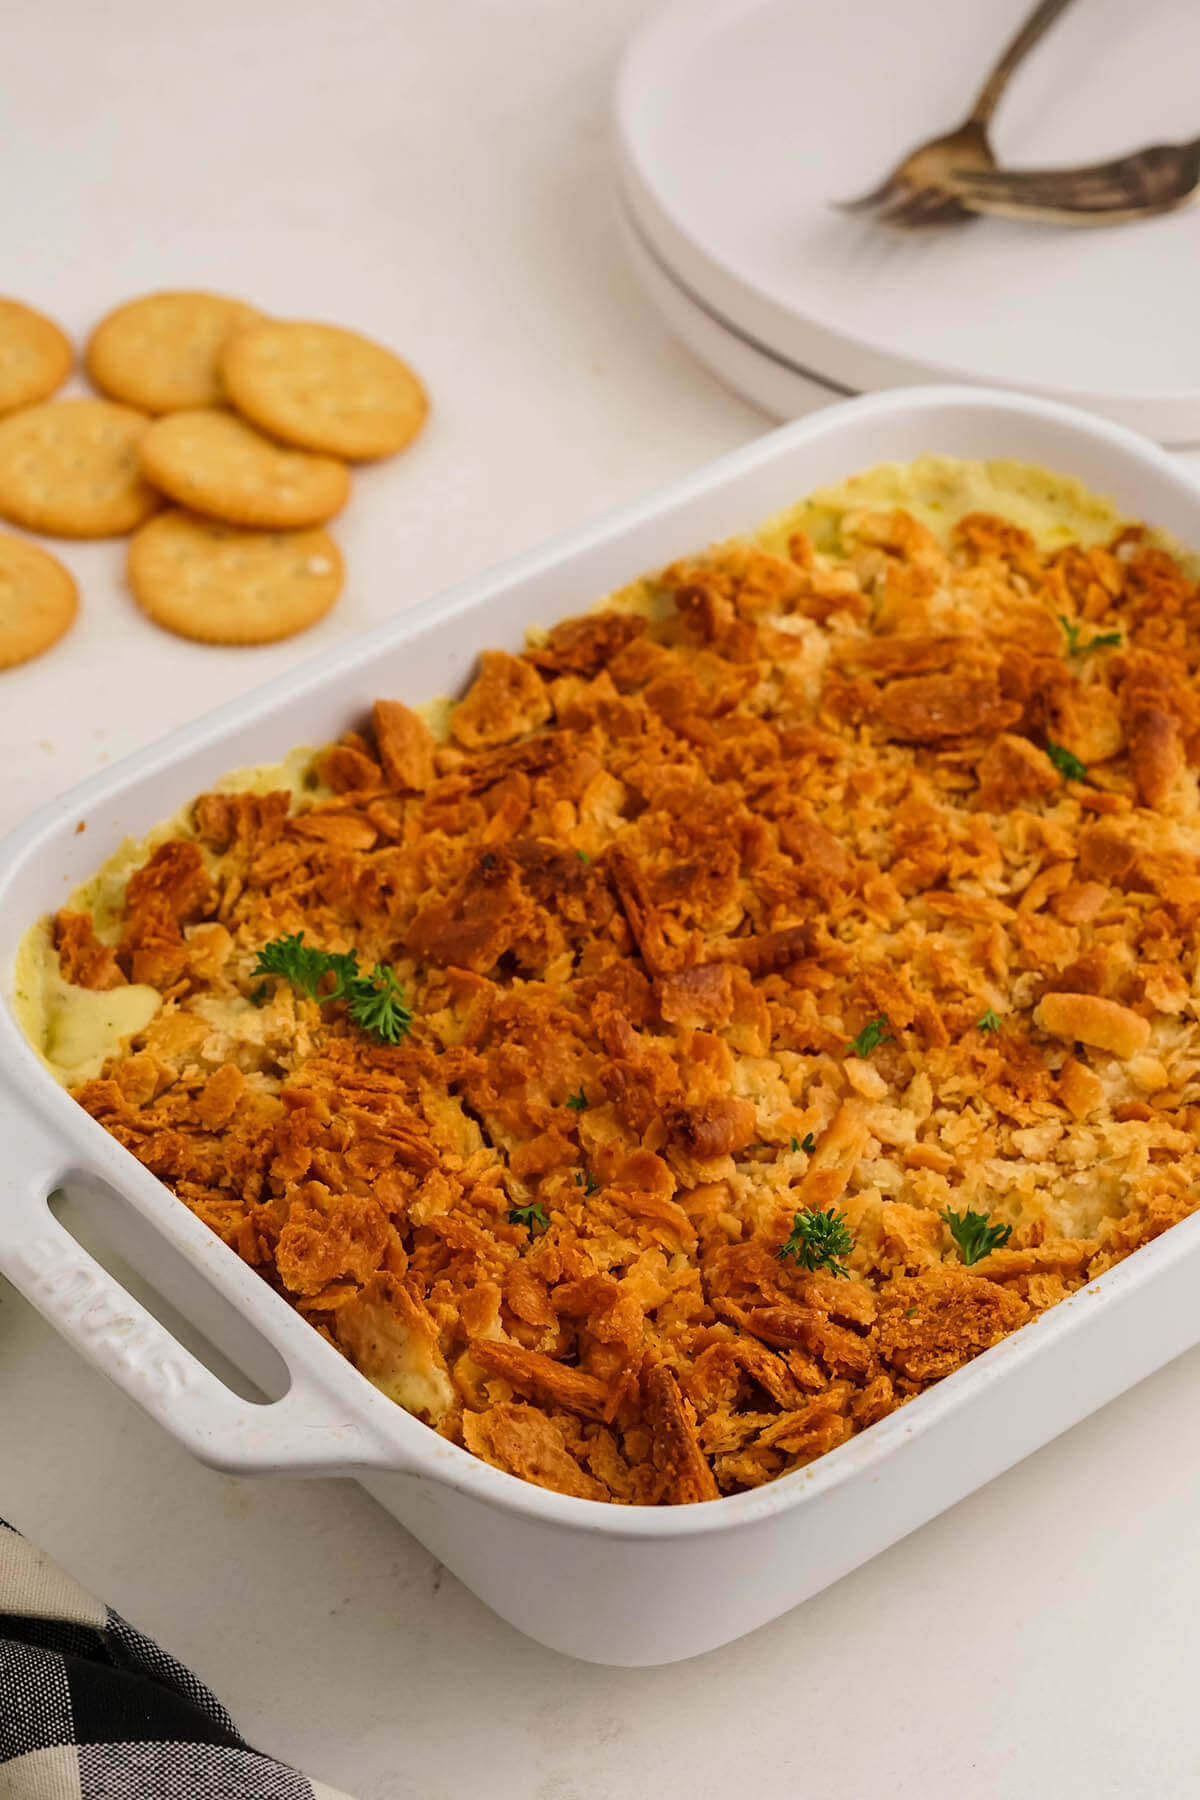 Cooked casserole dish on table with plates and forks ready to serve.